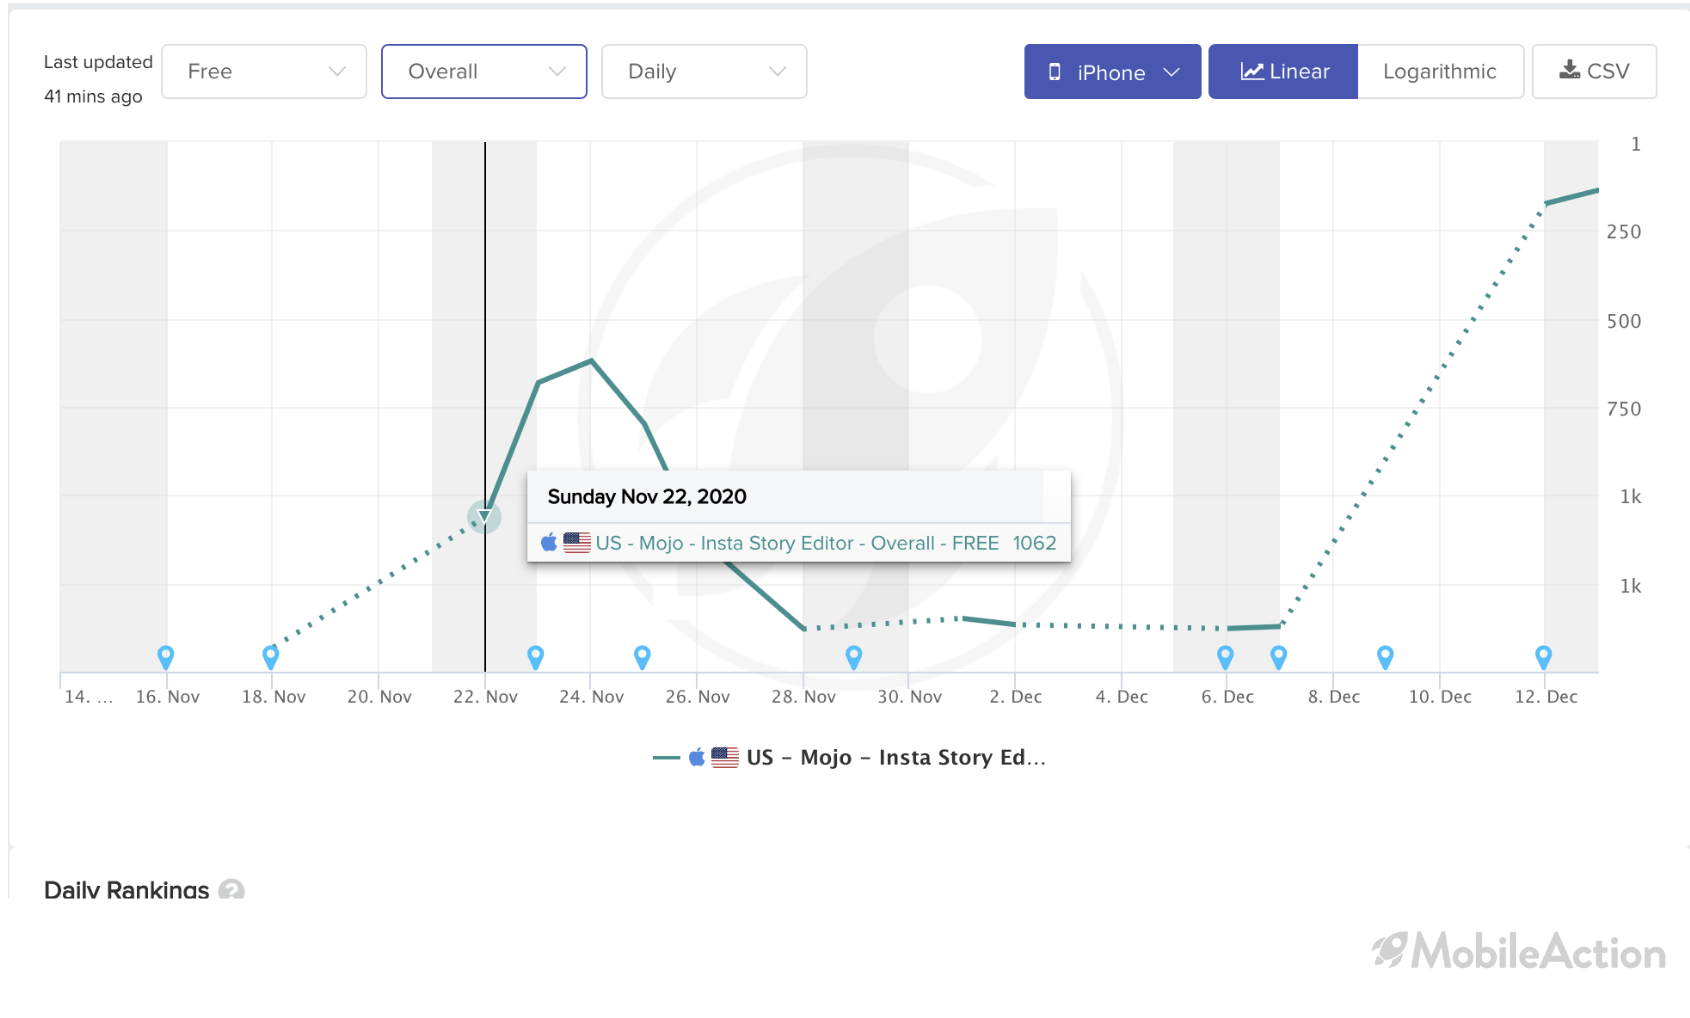 mojo downloads spikes